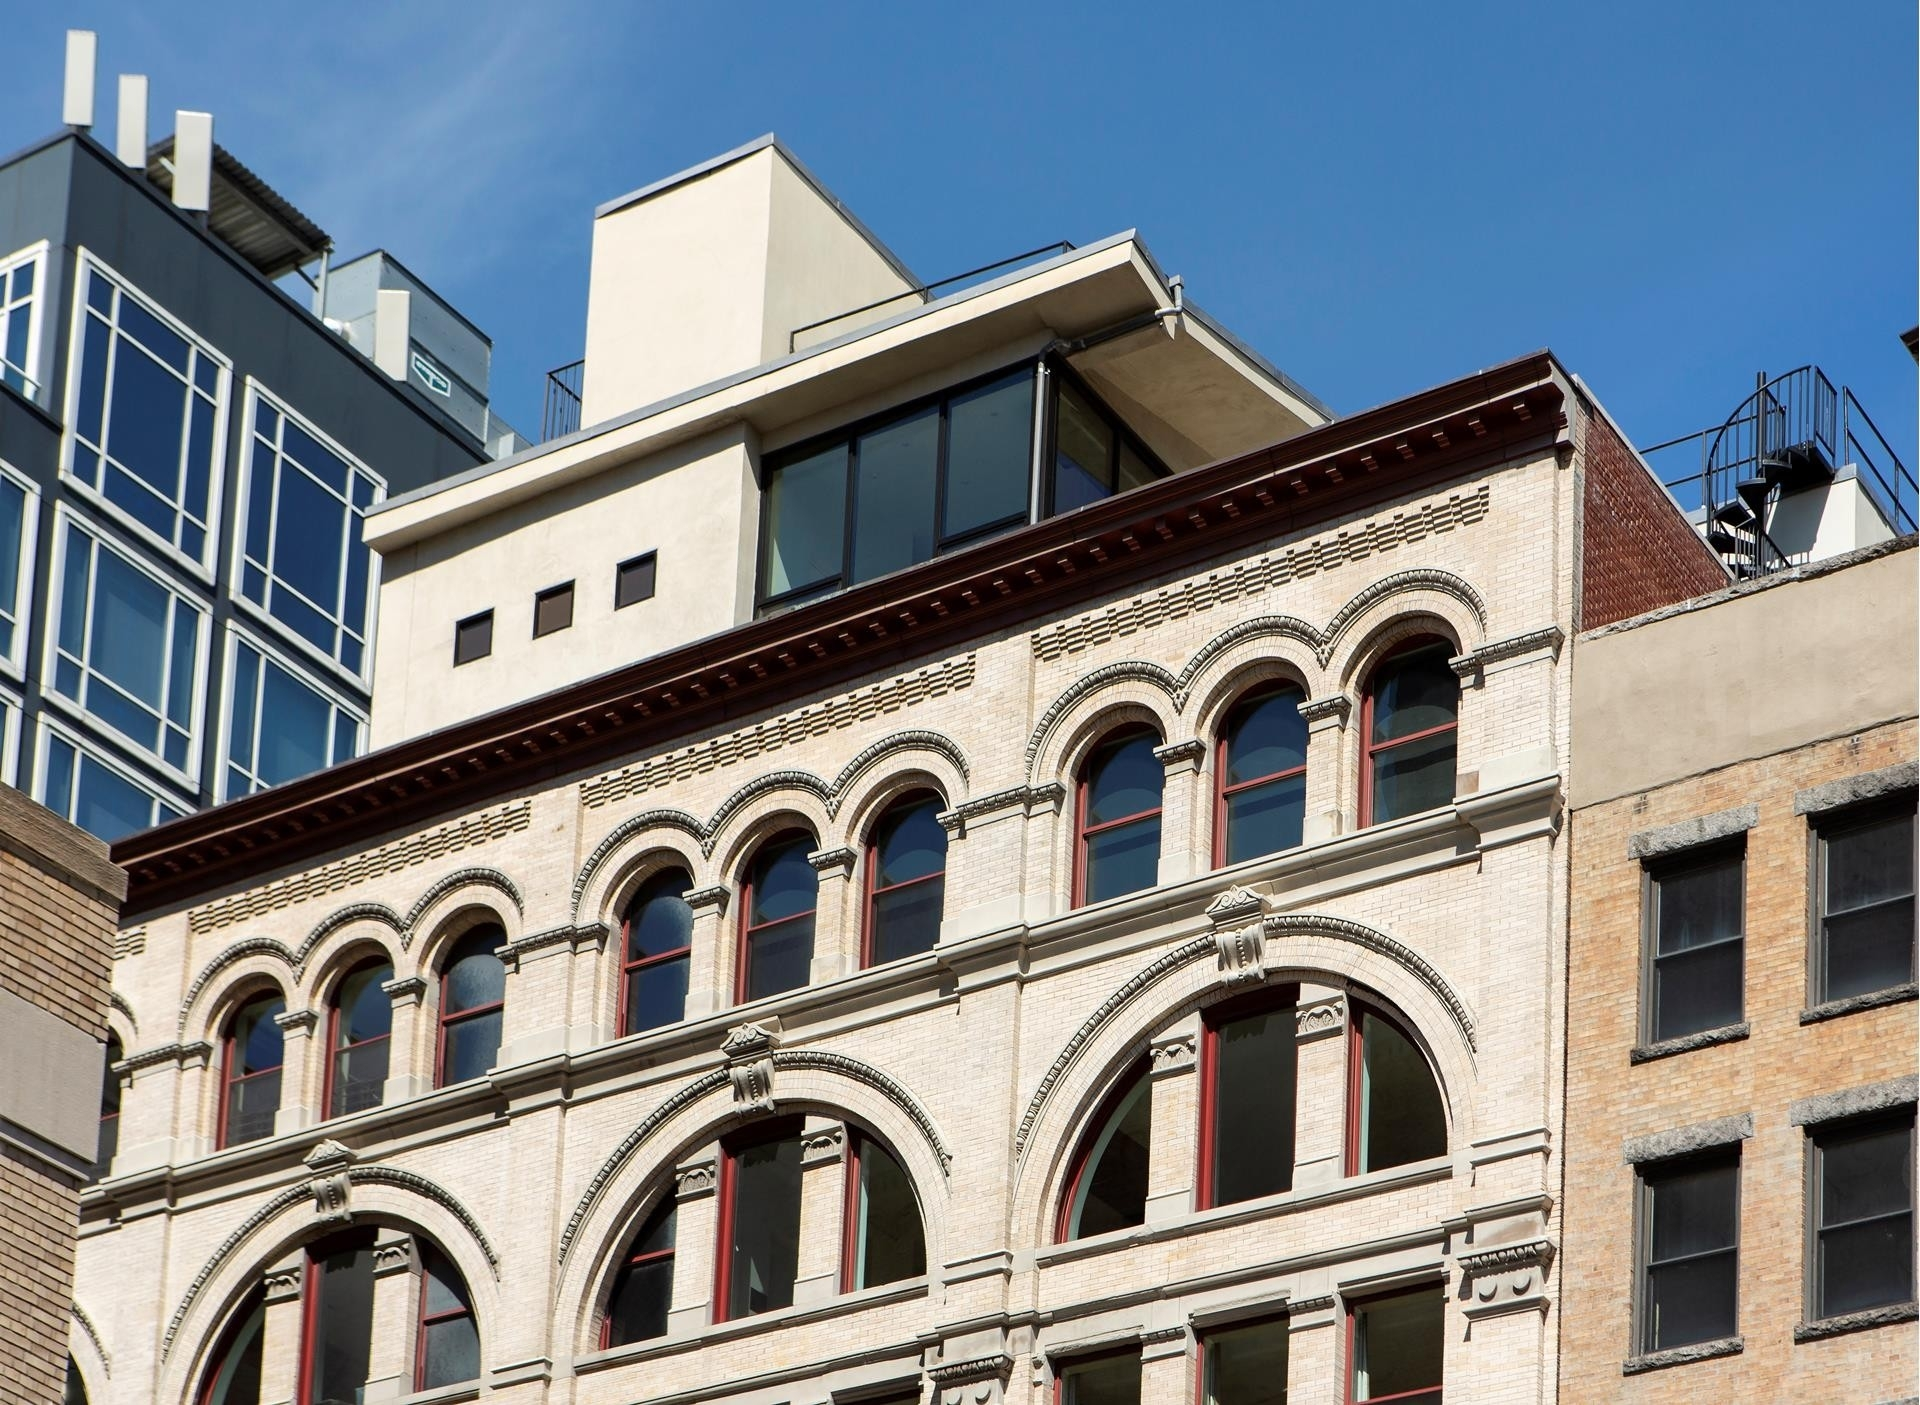 15. Condominiums for Sale at Spice Warehouse, 481 WASHINGTON ST , PHBC Hudson Square, New York, NY 10013